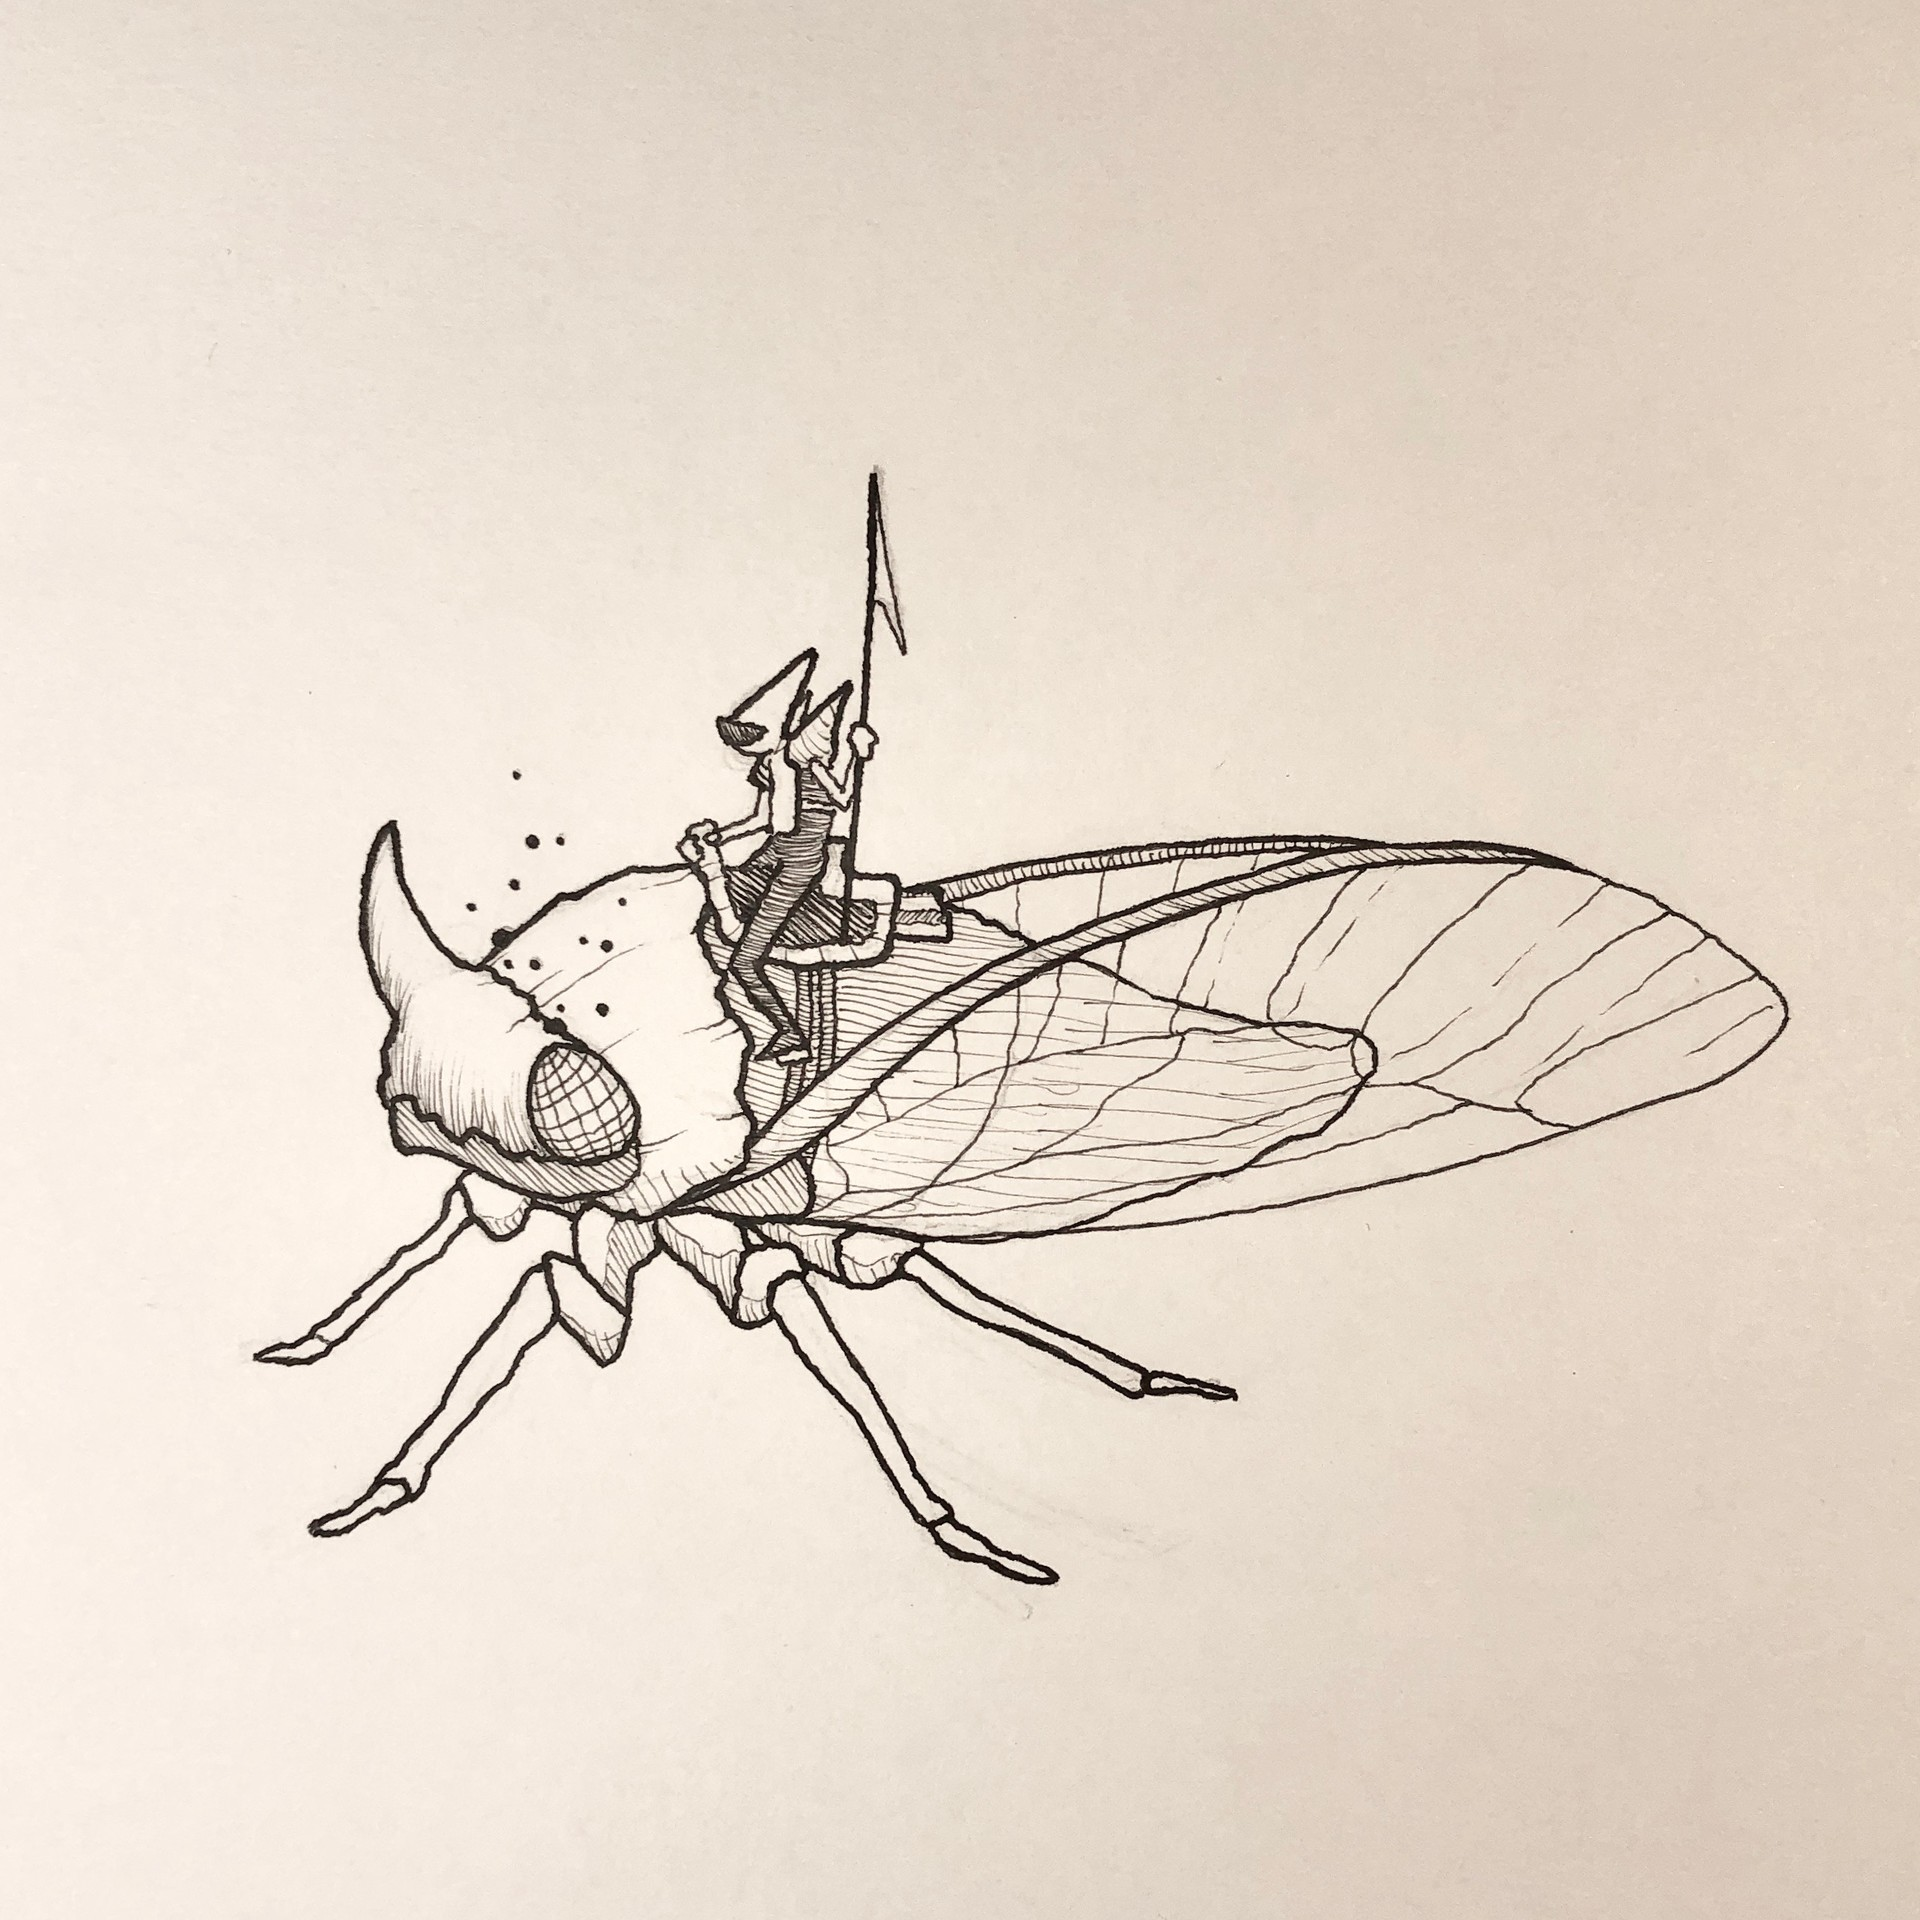 Inktober Day 16 - Angular